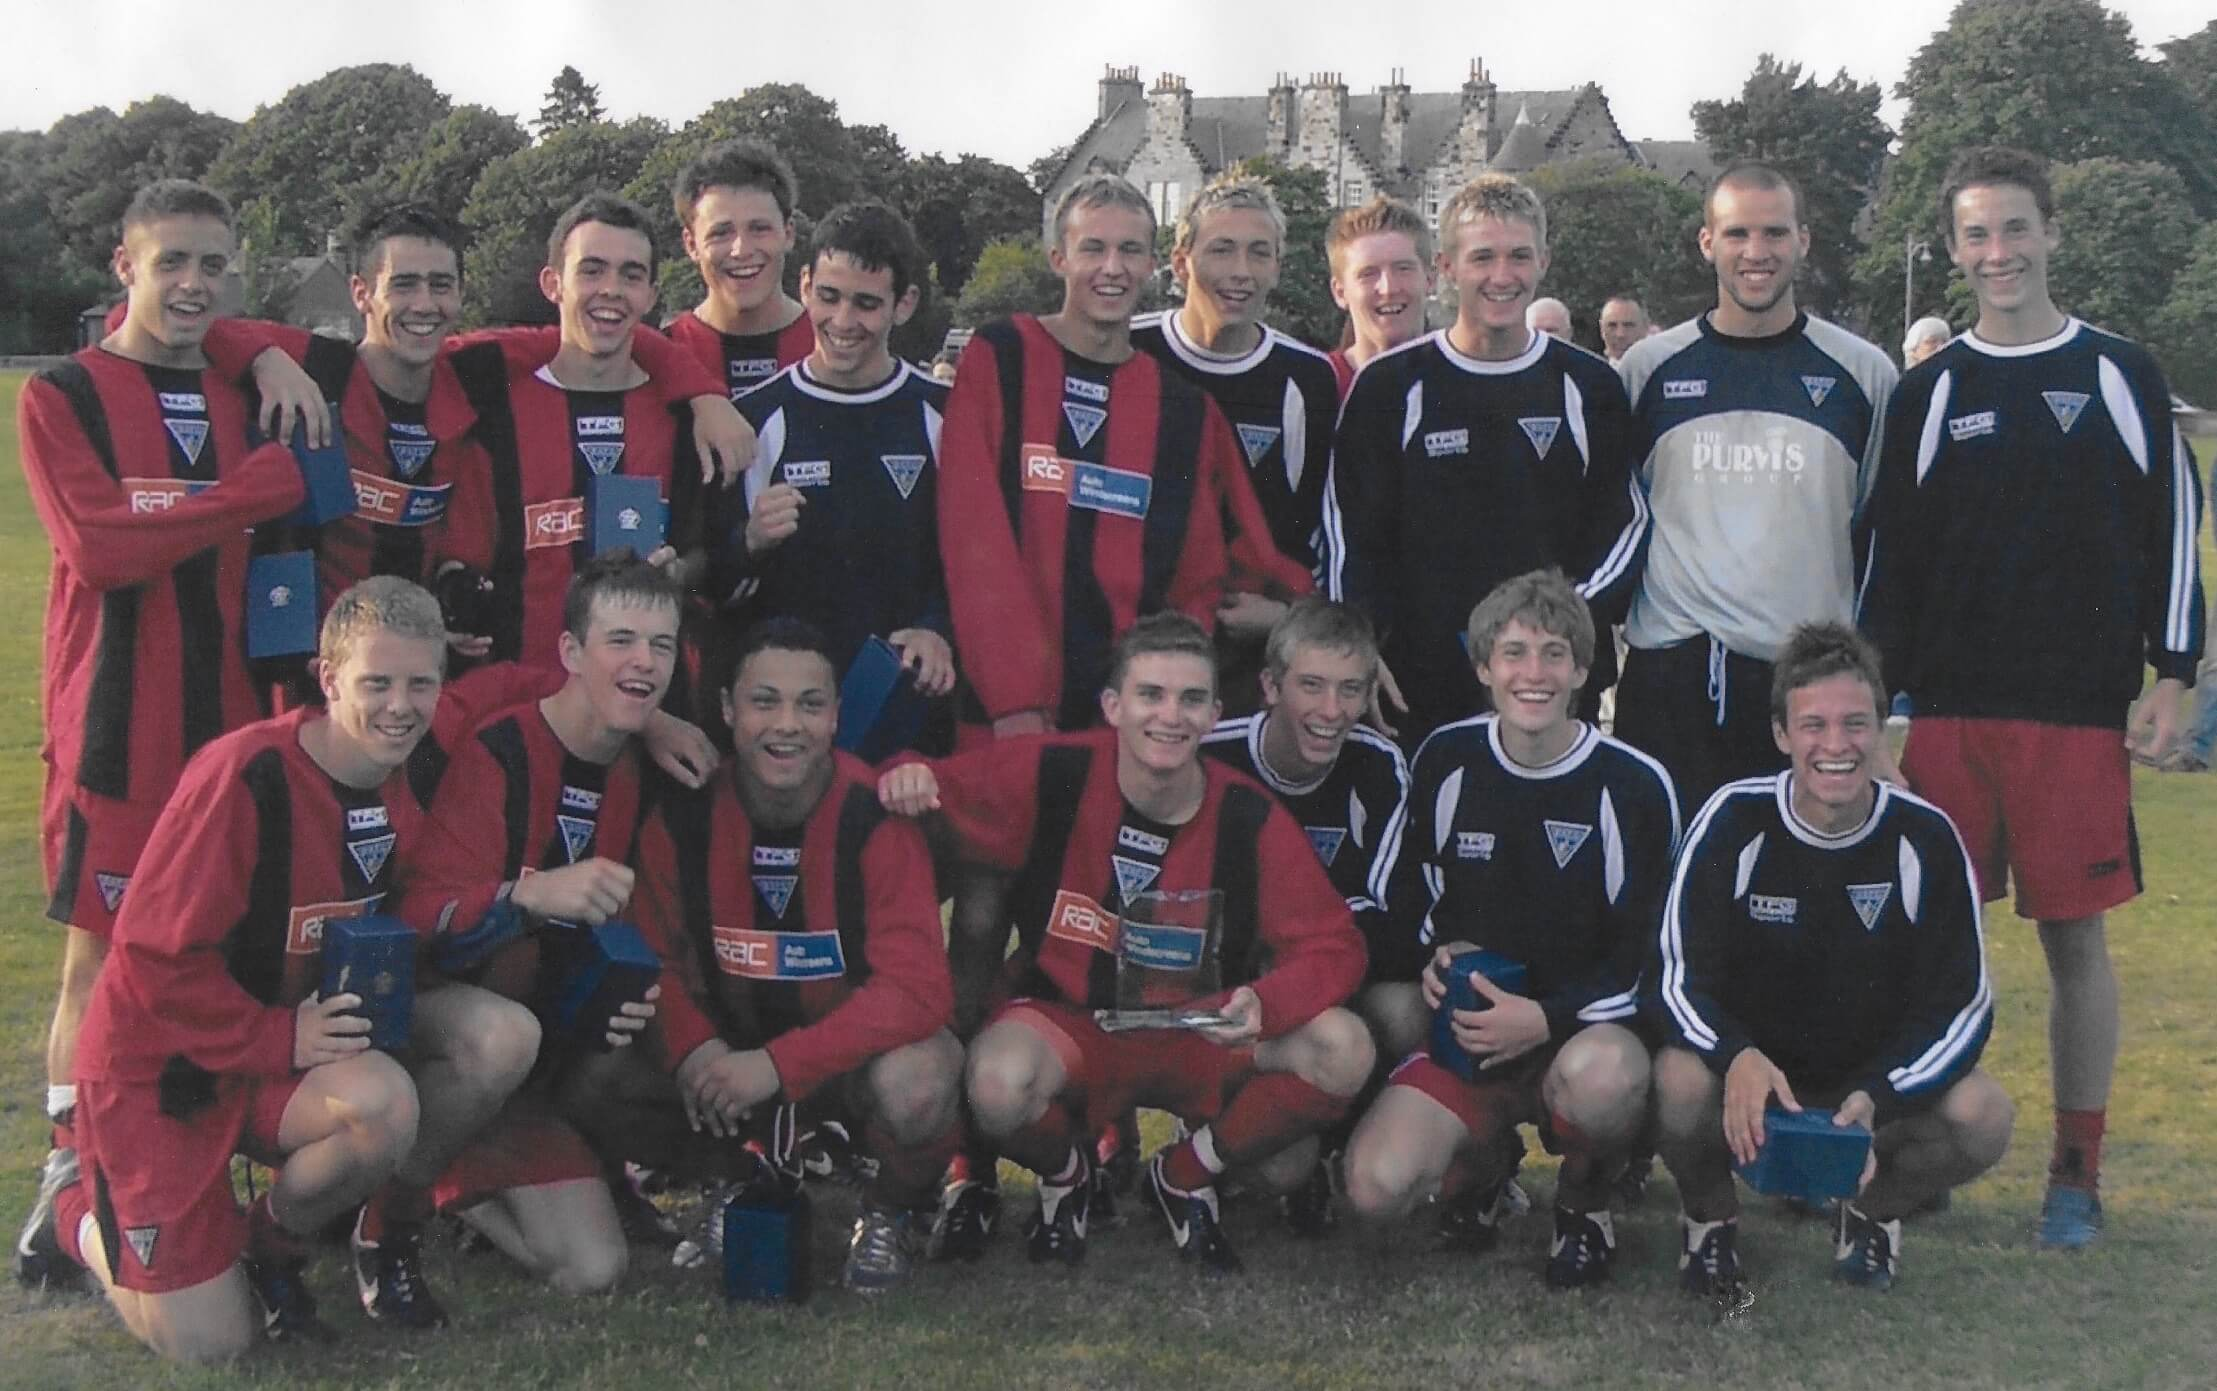 Dunfermline Athletic youth team